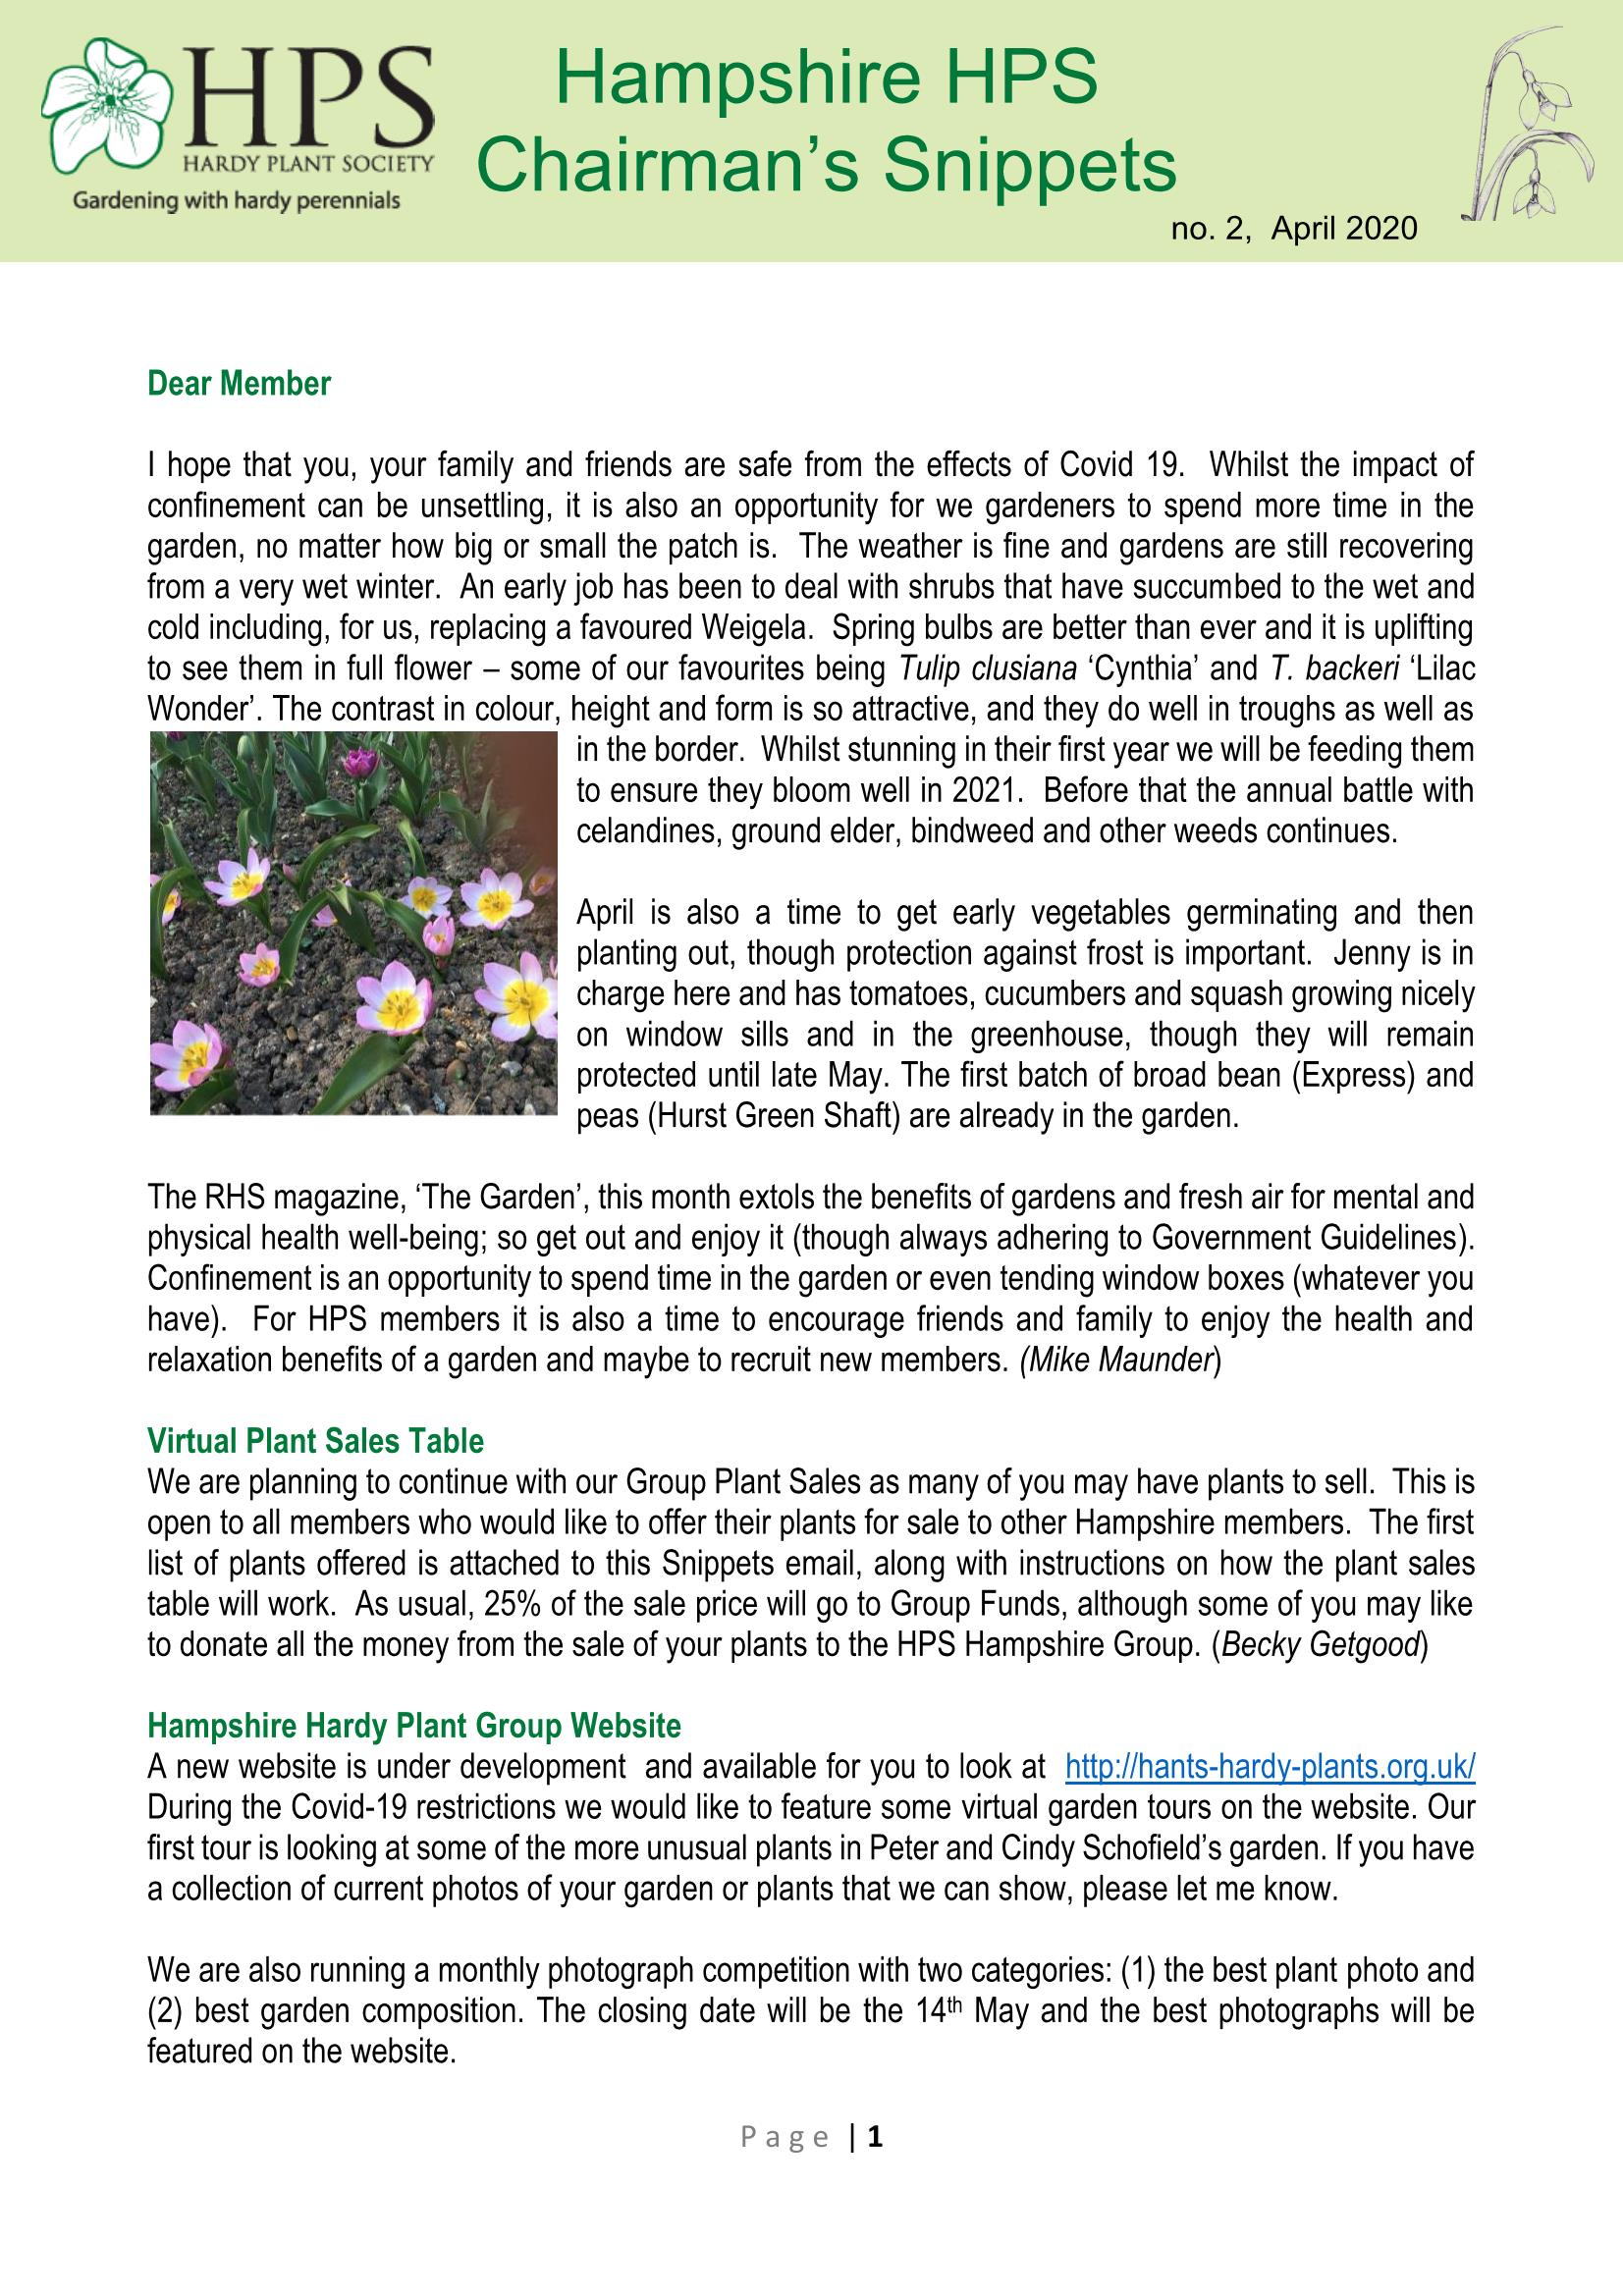 Chairman's Snippets April 2020 Final-Website_Page_1